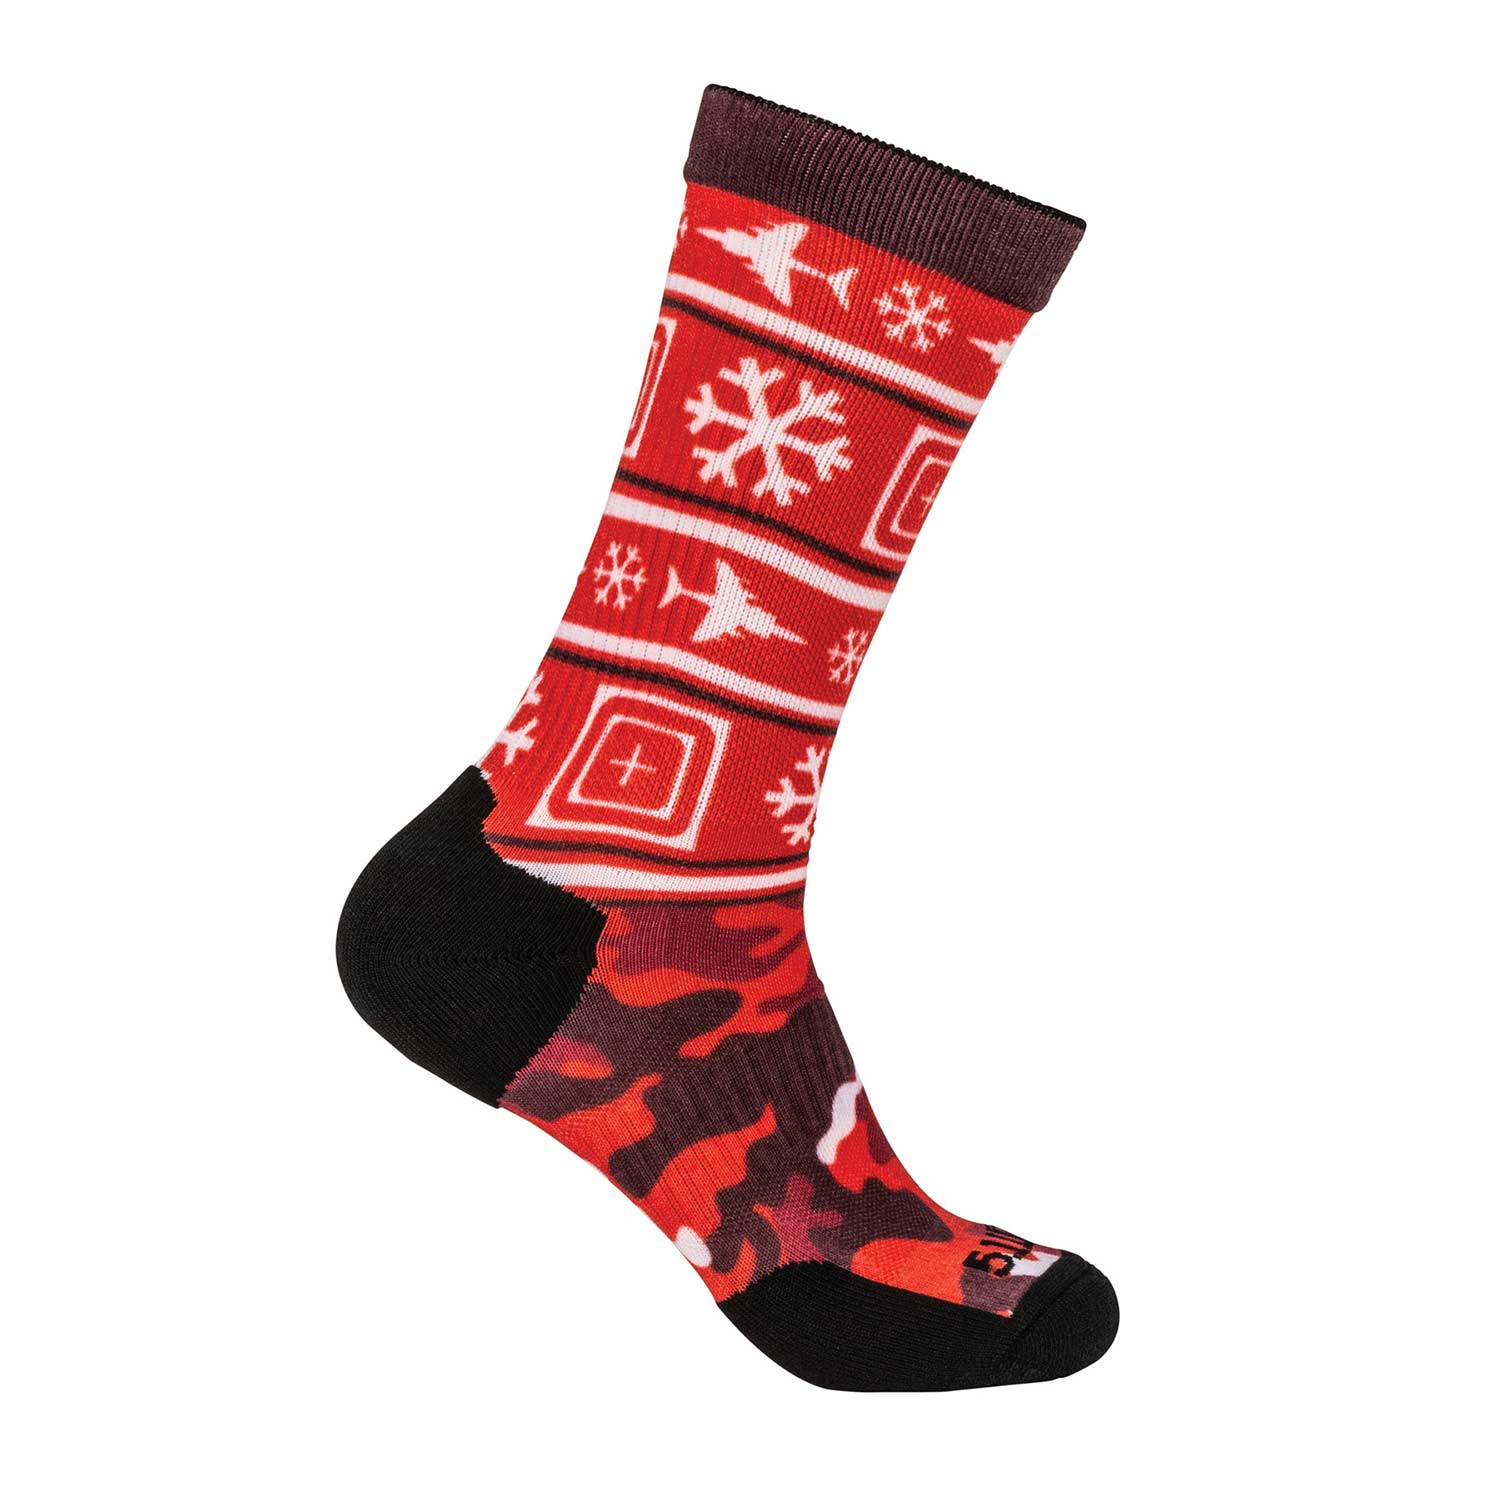 5.11 Sock and Awe Tactical Holiday Crew Sock